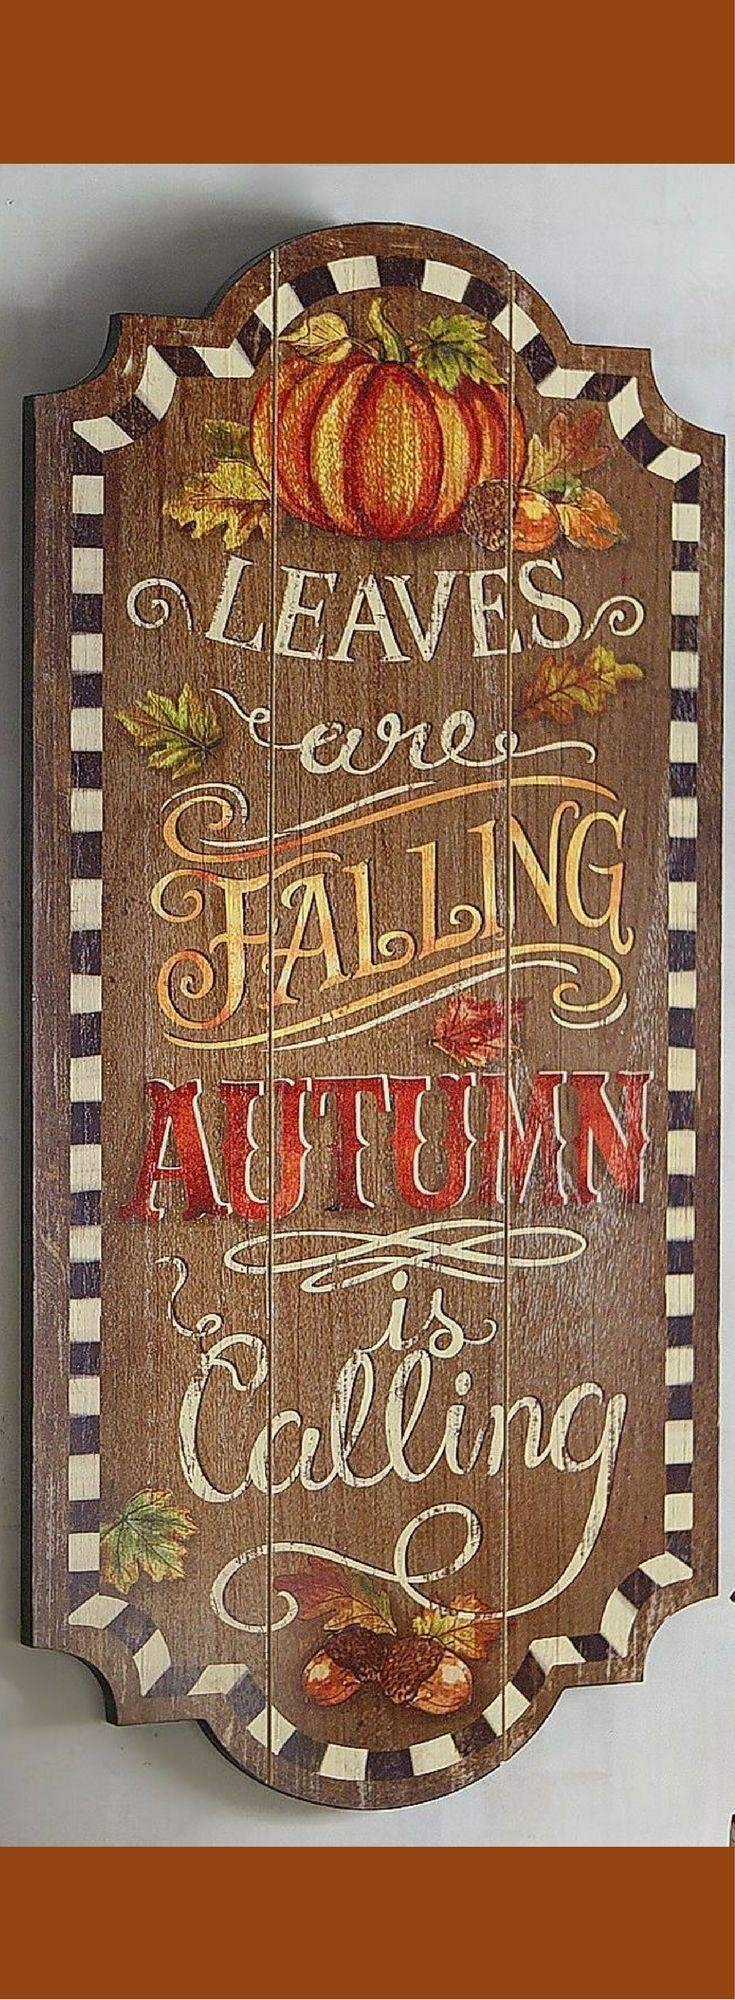 Top 25+ Best Wooden Fall Decor Ideas On Pinterest | Fall Decor With Regard To Autumn  Inspired Wall Art (Image 19 of 20)